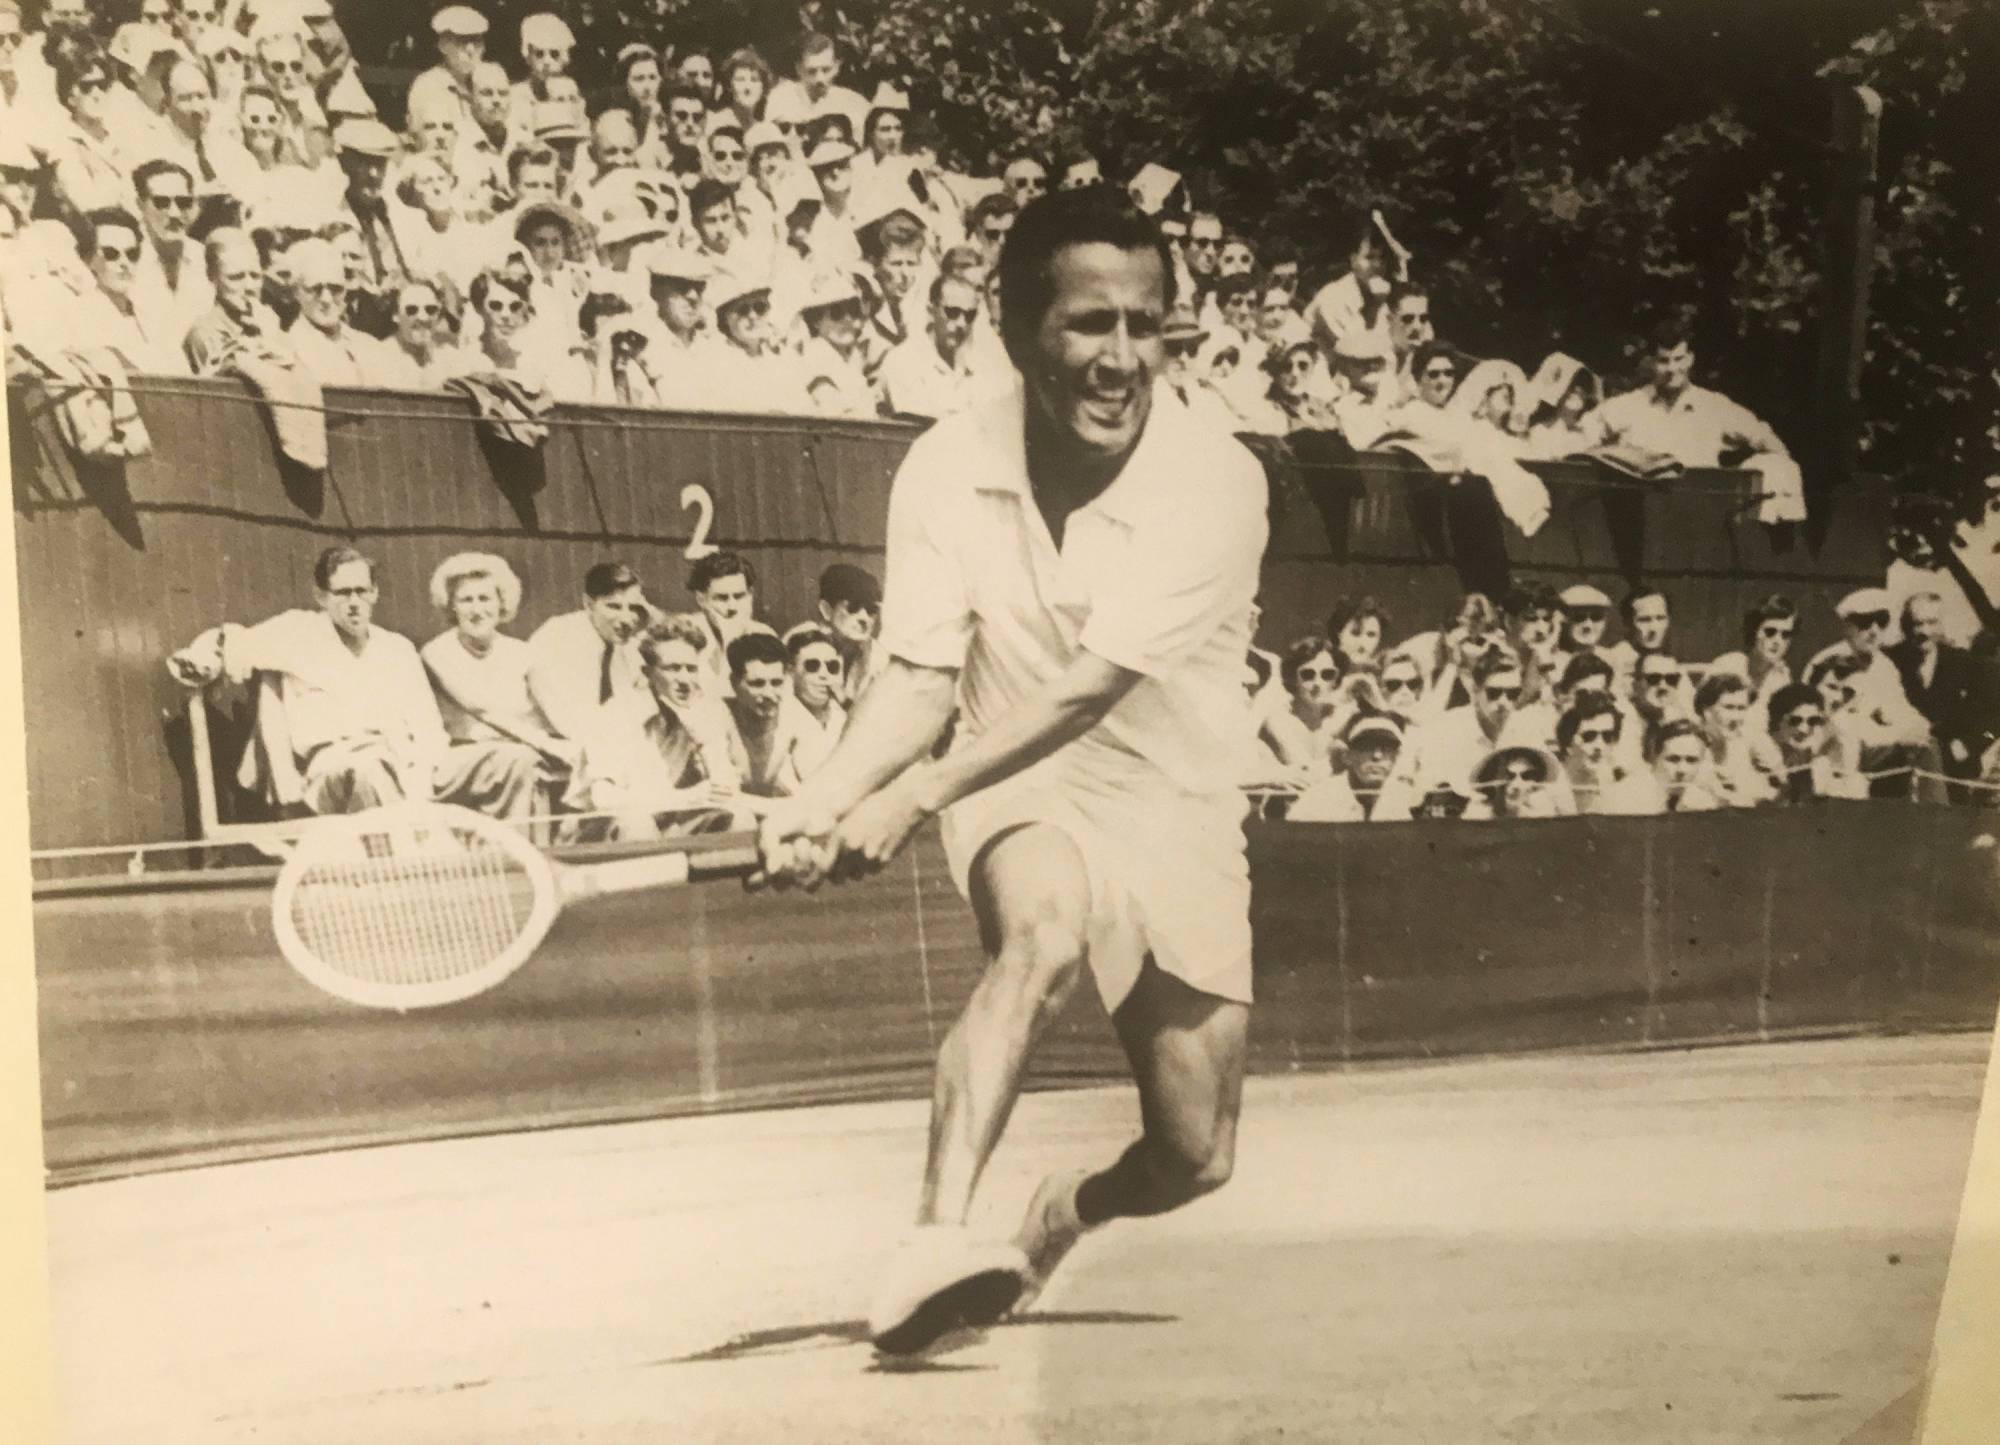 Tennis great Pancho Segura s at 96 coached Jimmy Connors